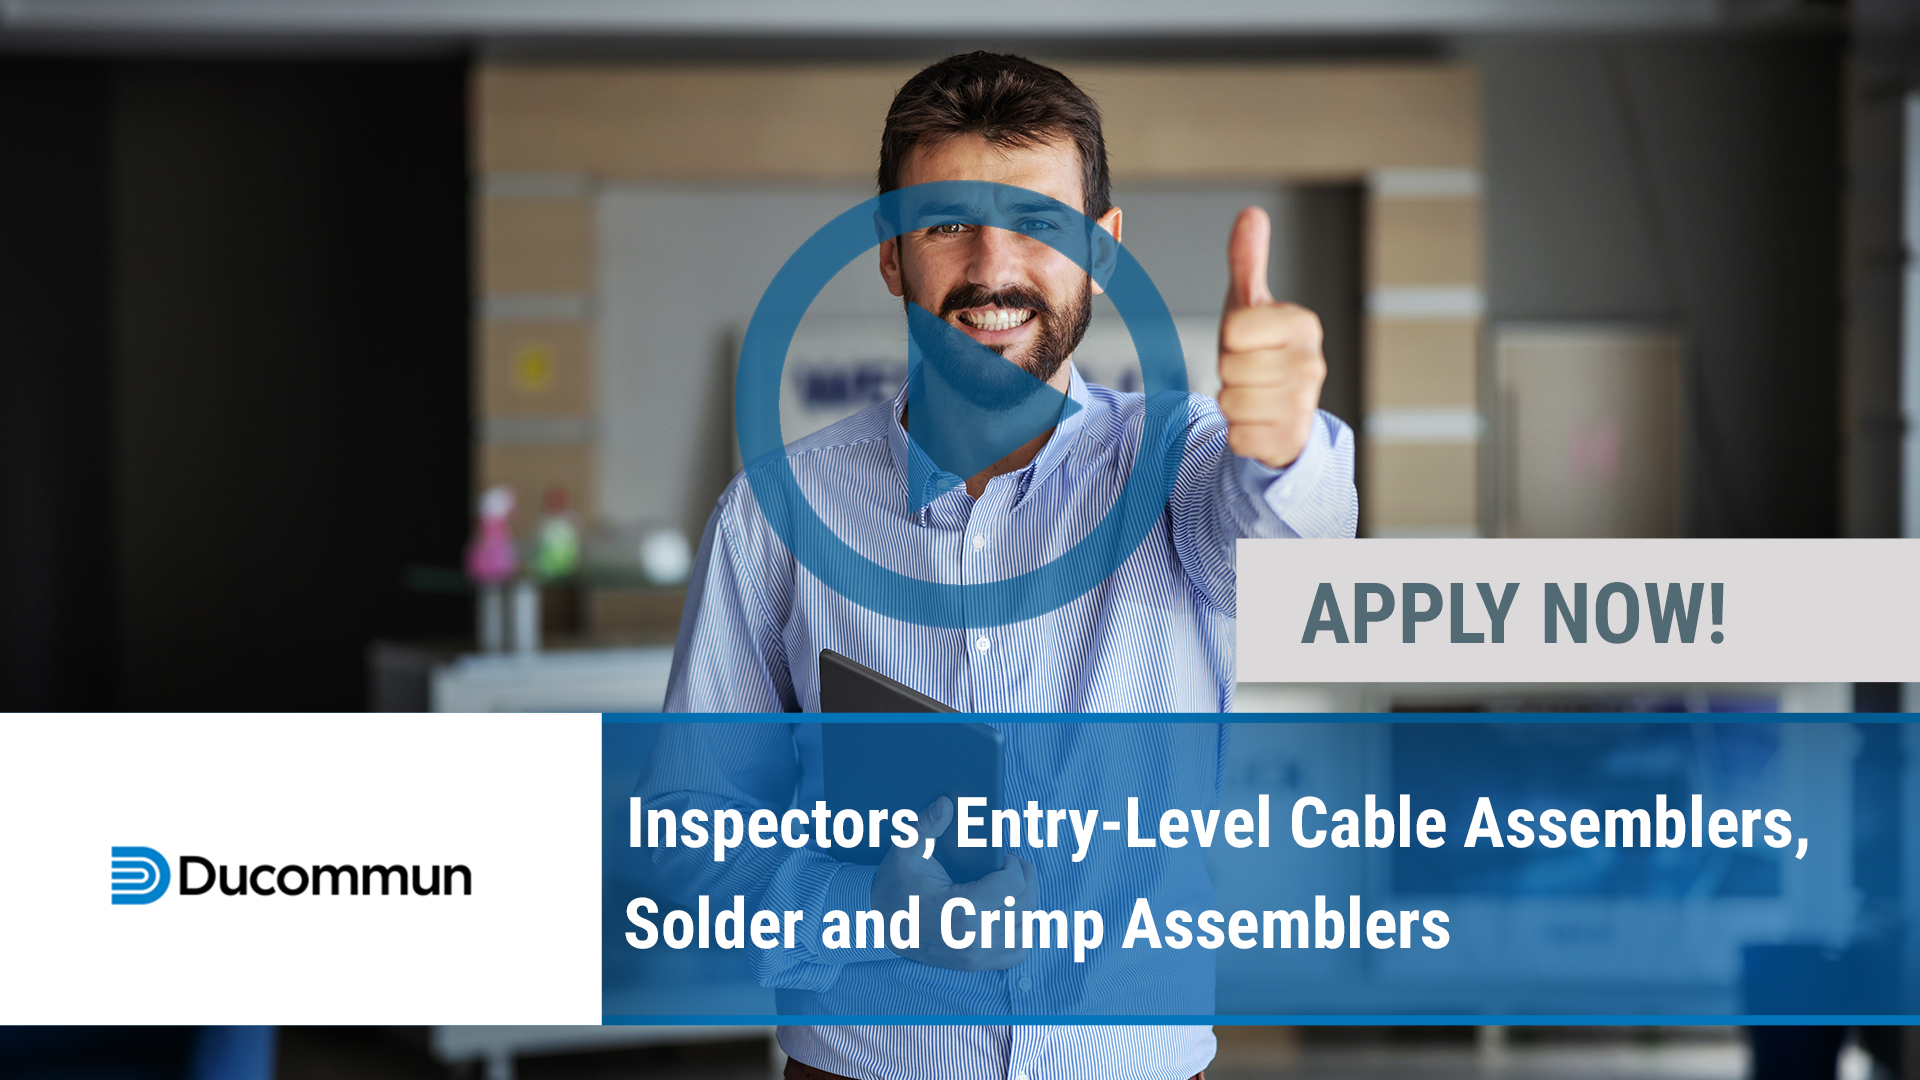 Watch our careers video for available job opening Inspectors, Entry-Level Cable Assemblers, Solder  in Joplin, MO